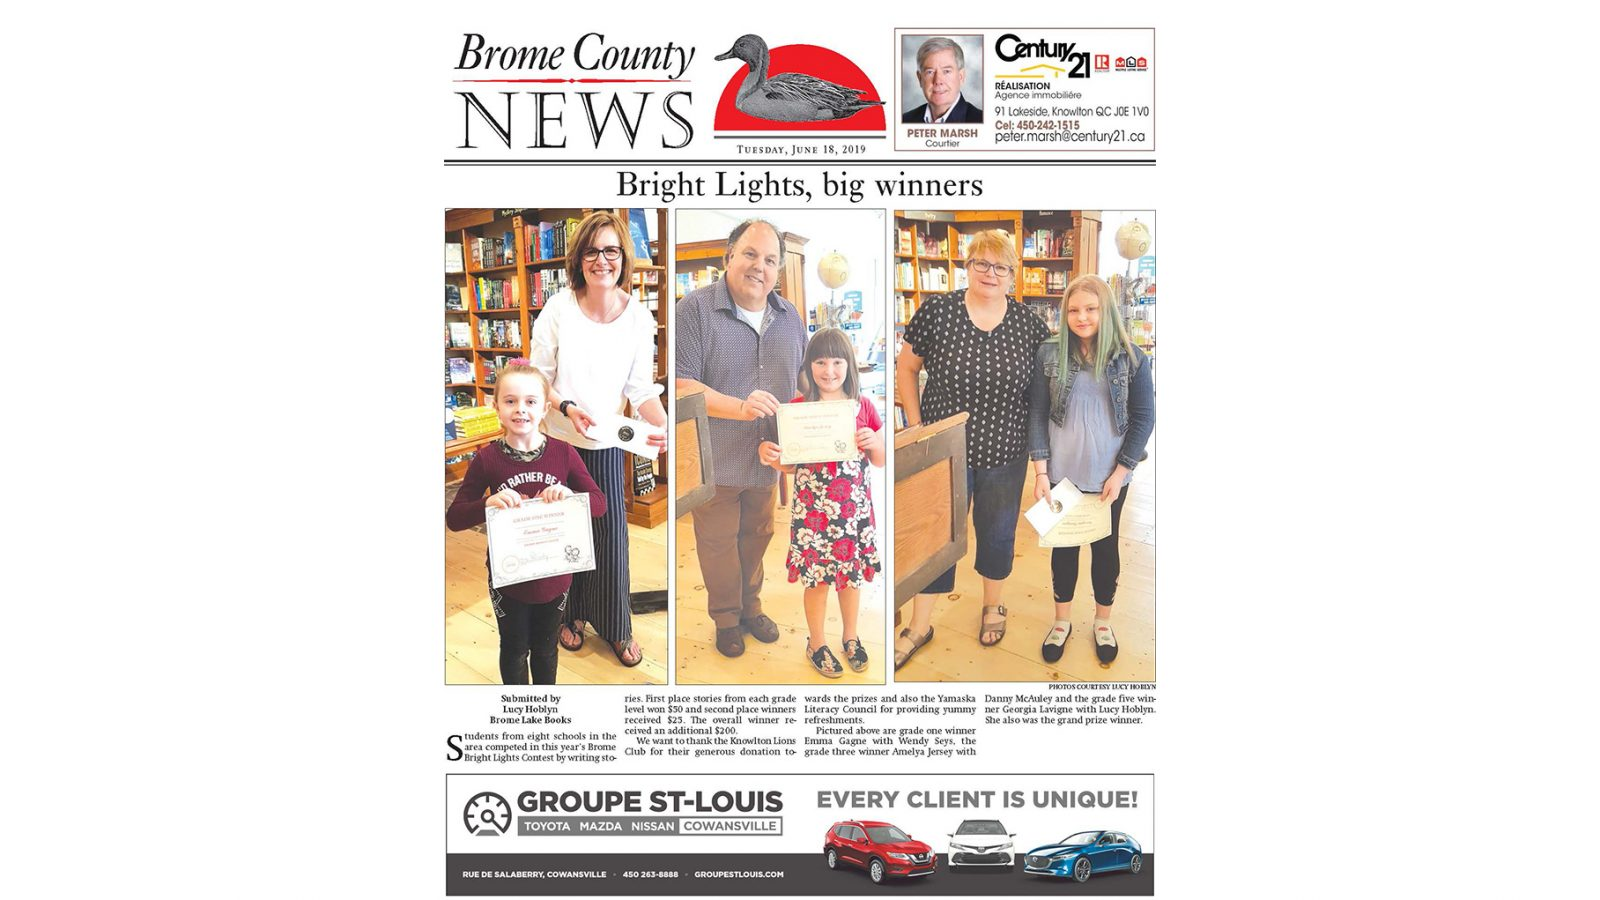 Brome County News – June 18, 2019 edition